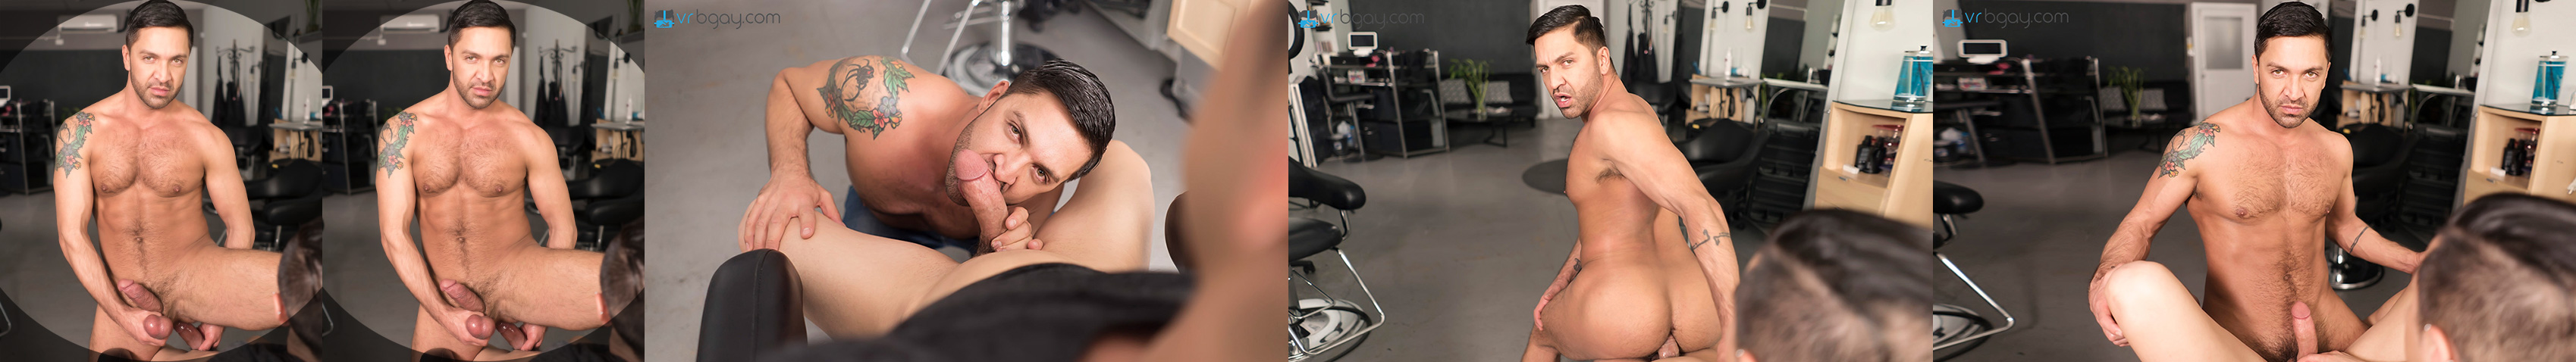 Watch Online and Download Meet the Barber VR Porn Movie with Dominic Pacifico